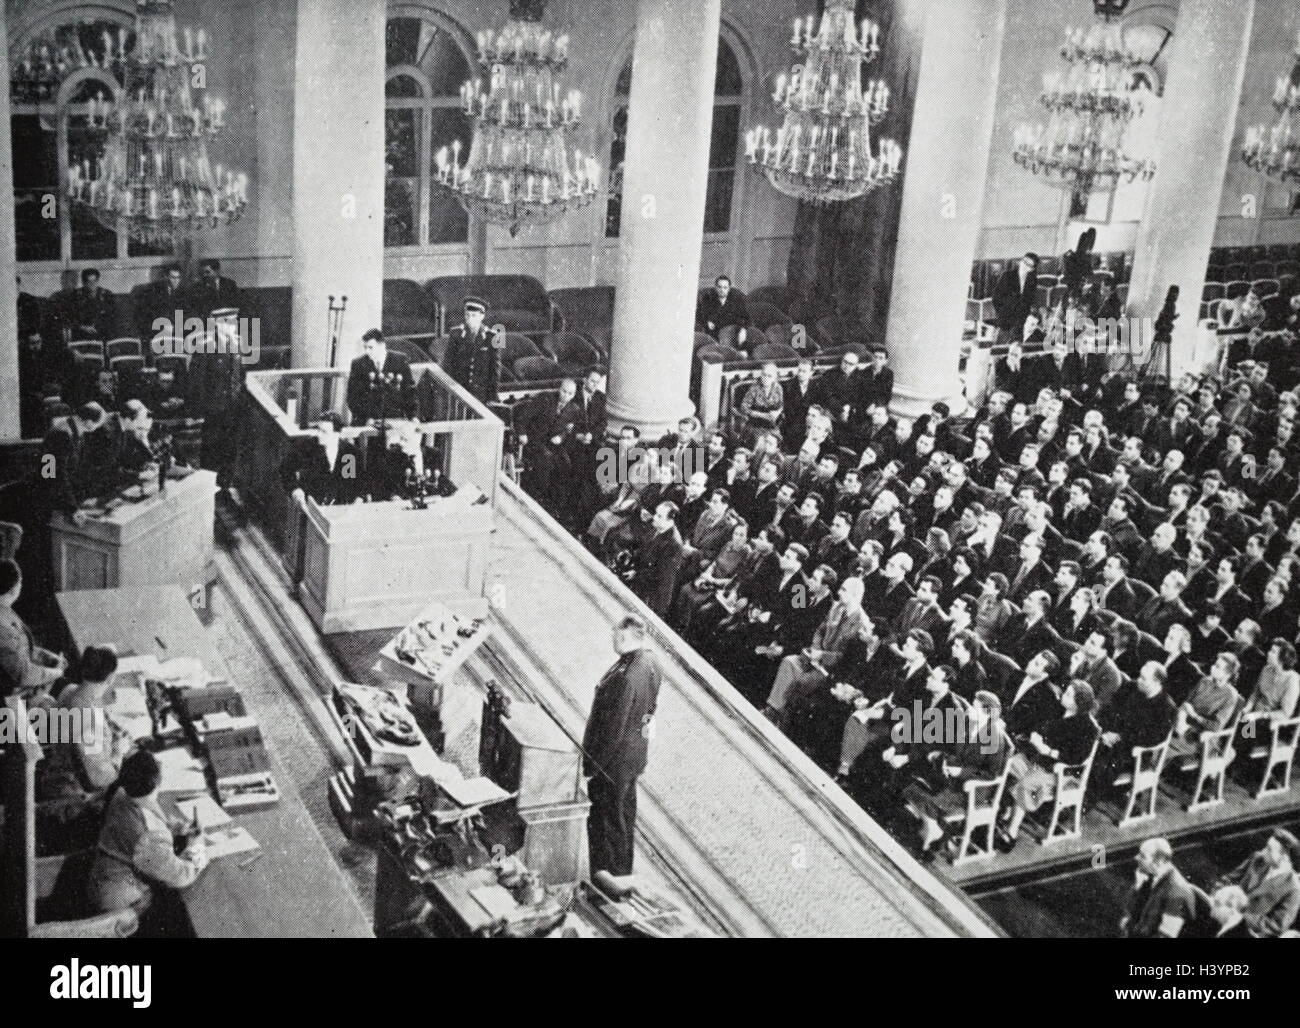 Photograph taken during the trial of Francis Gary Powers - Stock Image